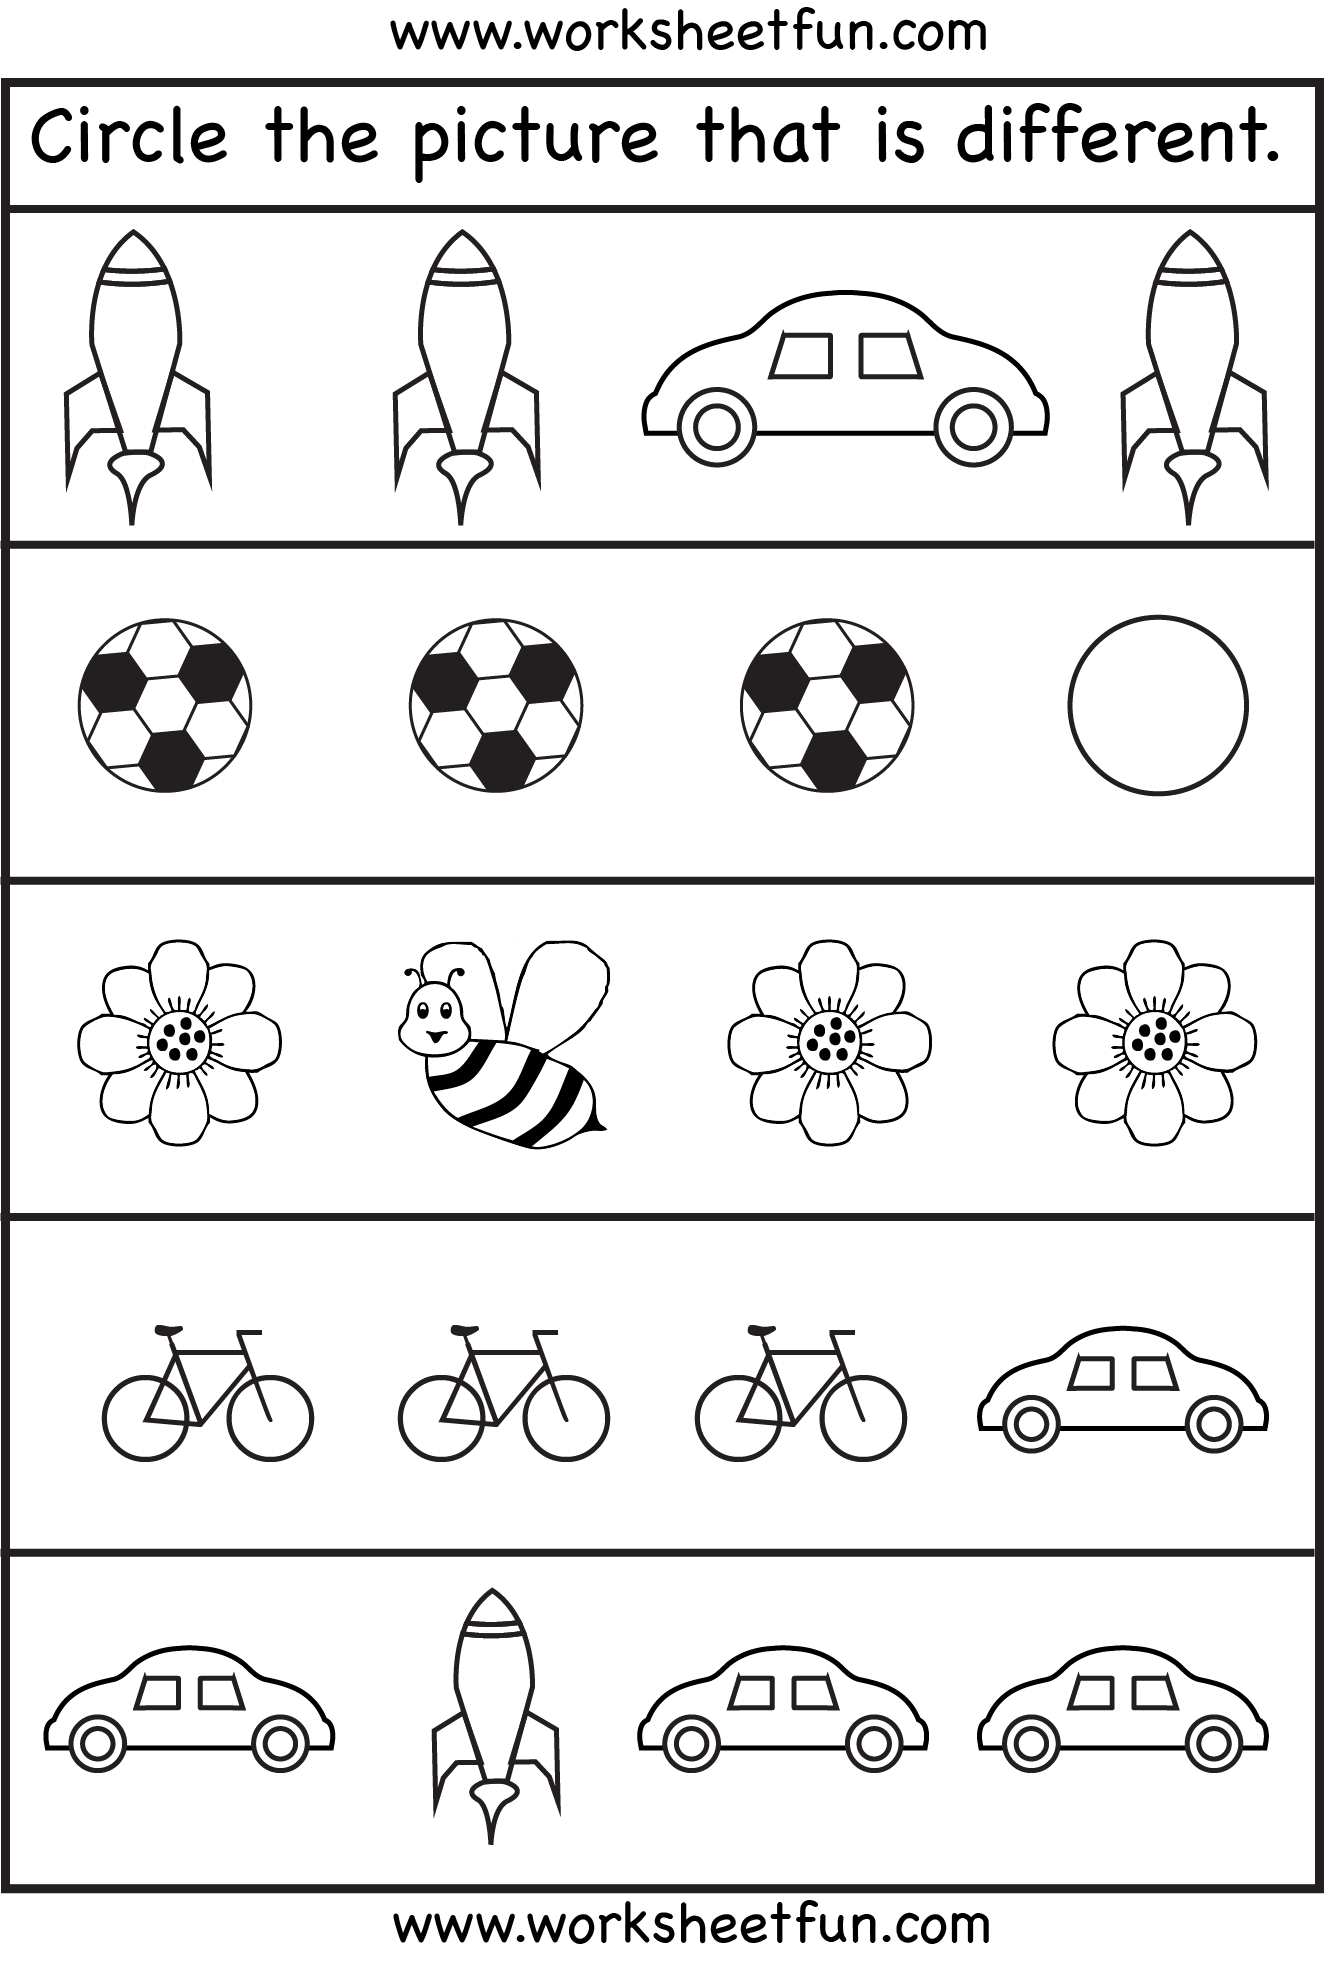 circle the picture that is different 4 worksheets - Toddler Activities Printables